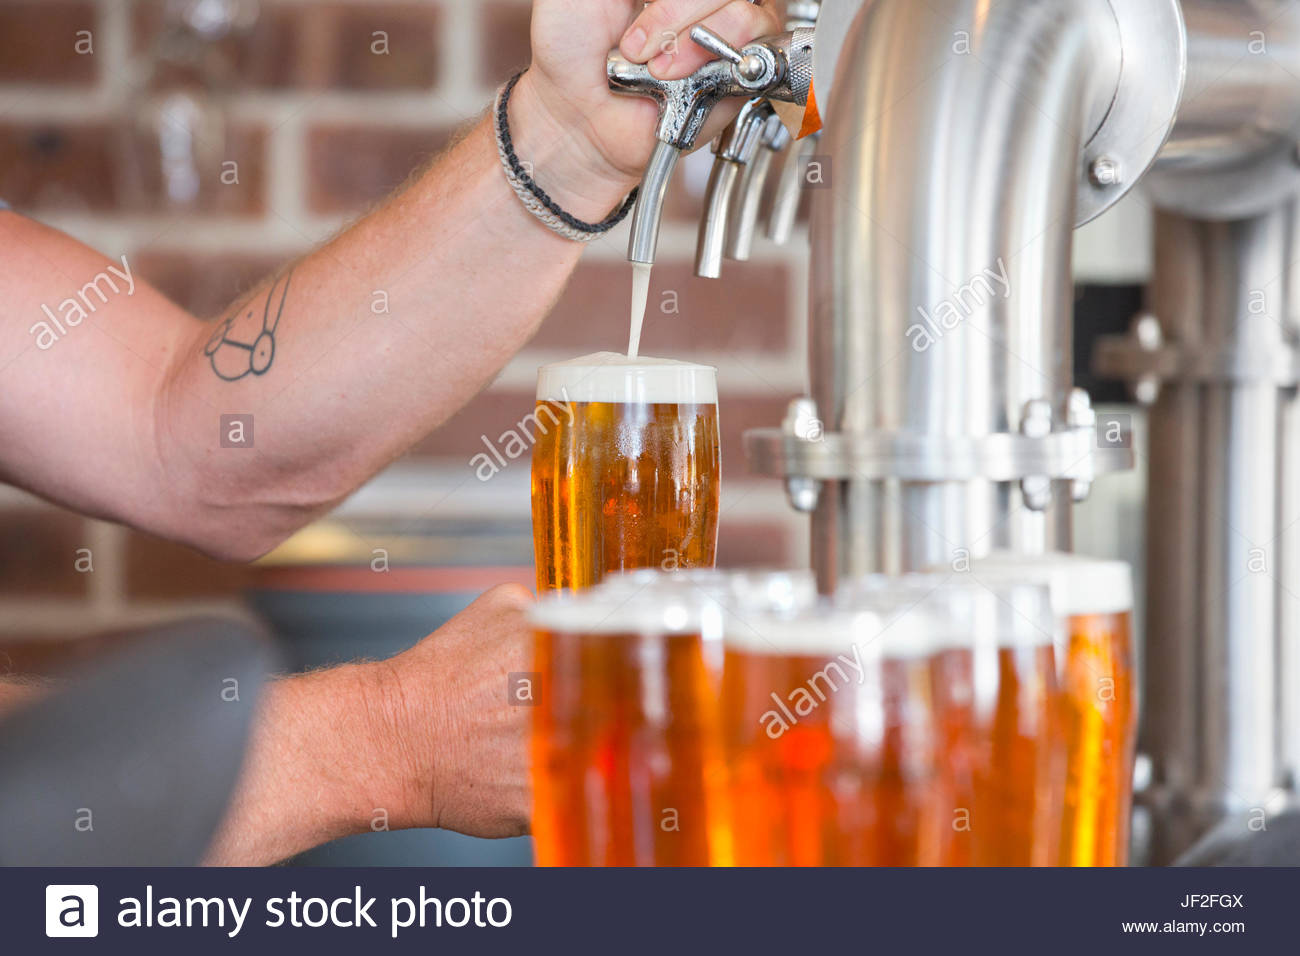 Close Up Of Bartender Pouring Pint Of Beer Behind Counter - Stock Image